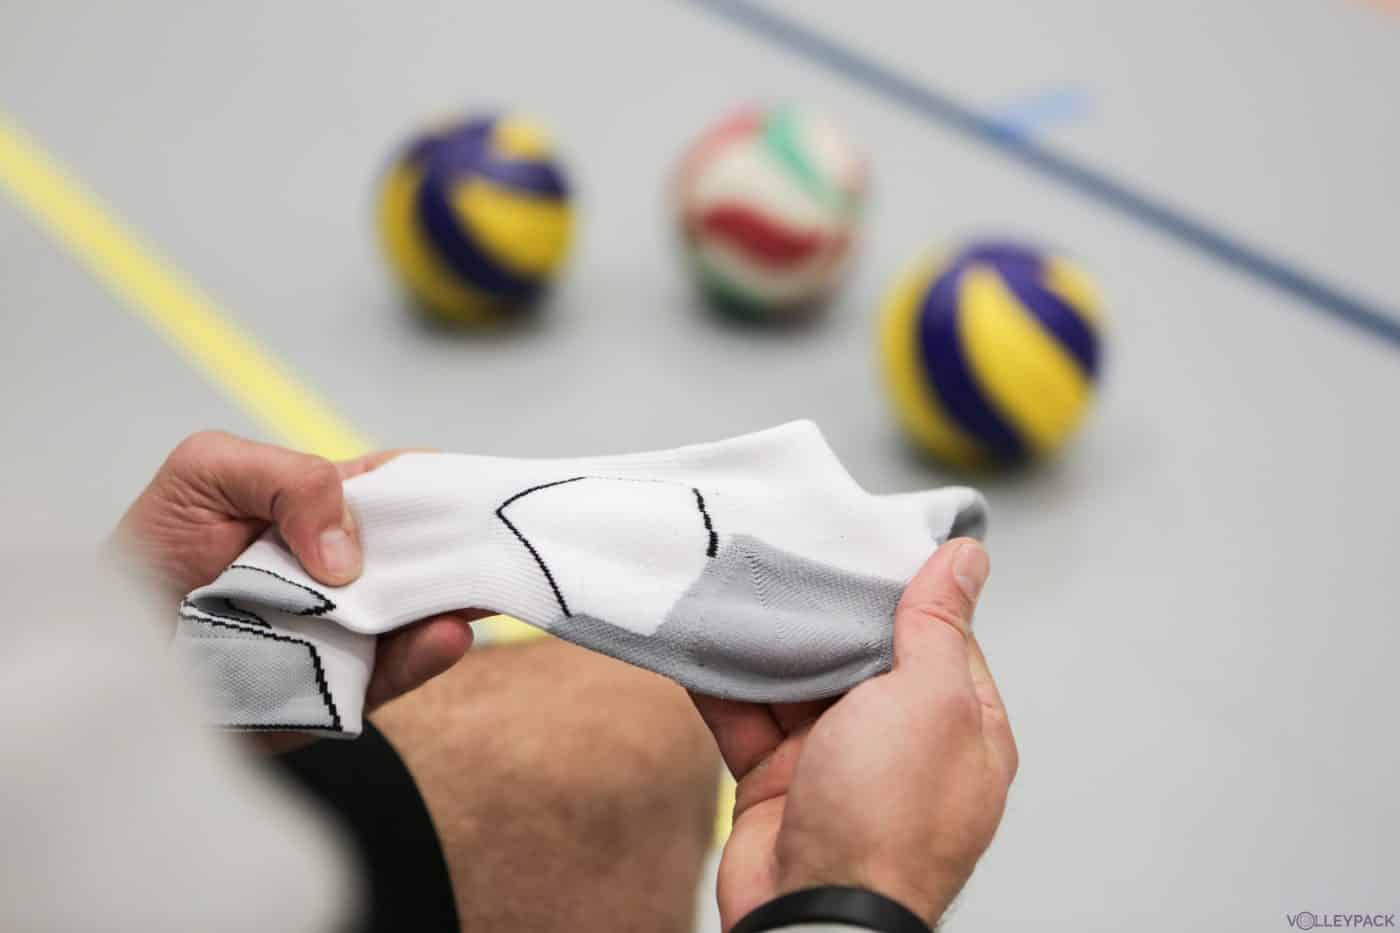 chaussettes-ranna-sport-test-volleypack-11